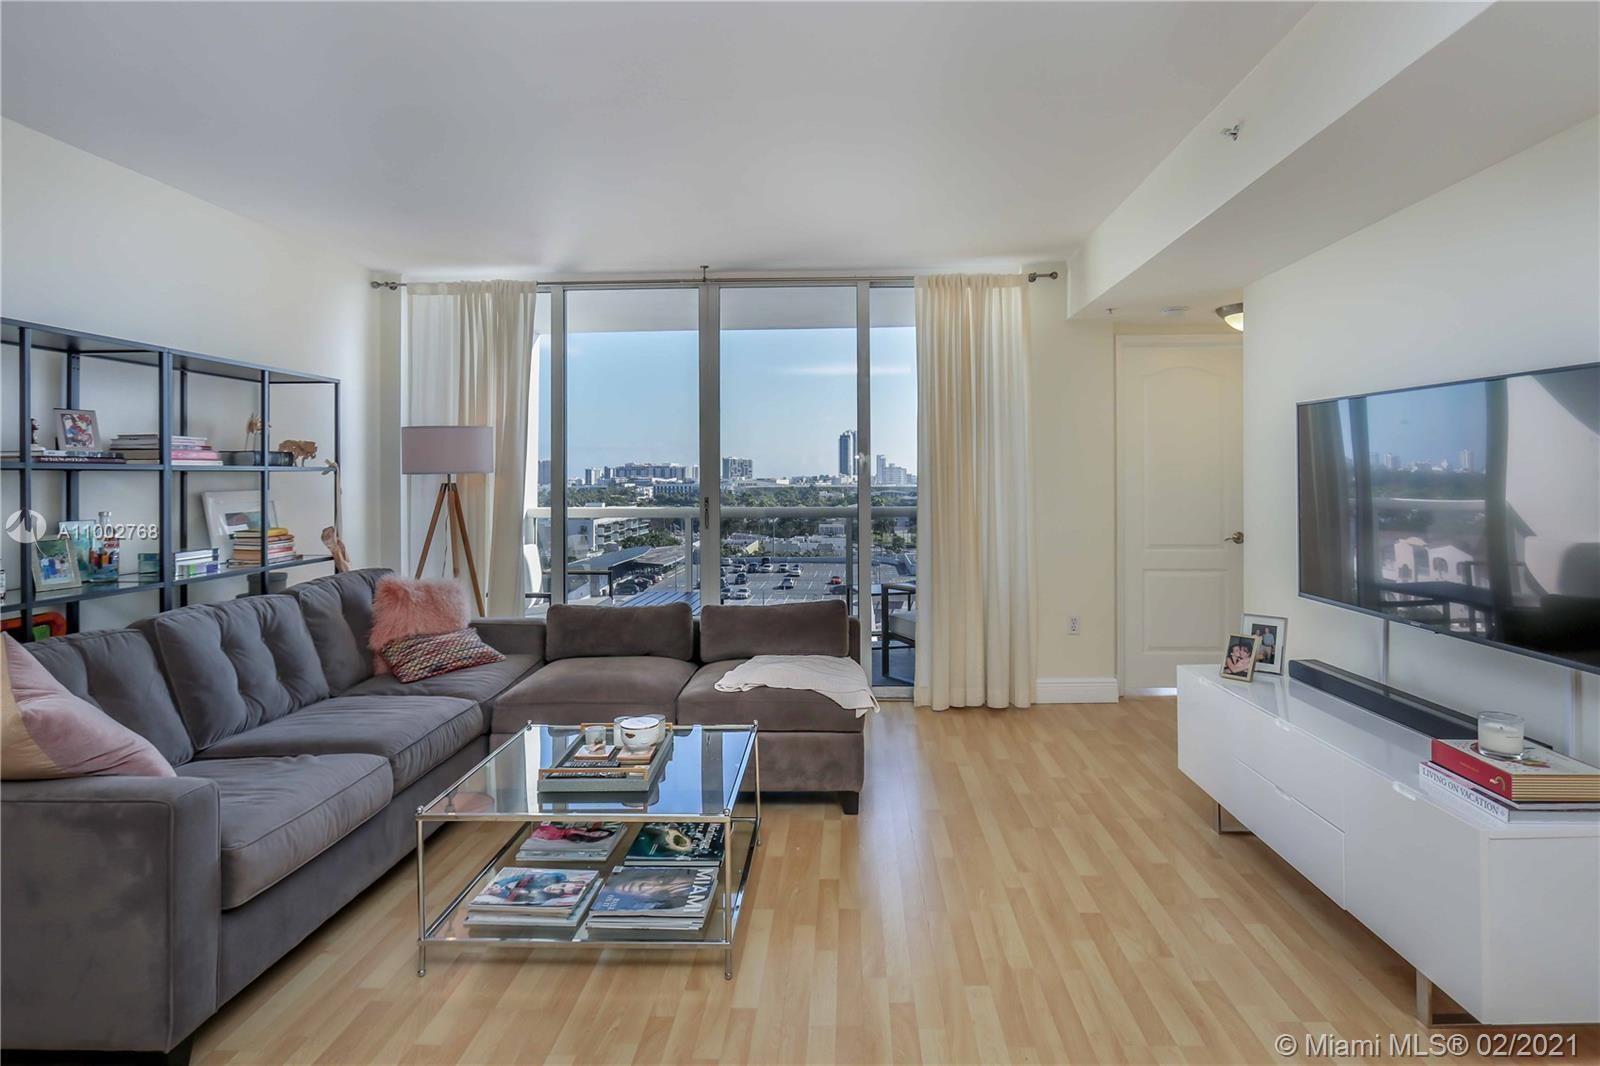 LOWEST PRICED 2 bedroom in Sunset Harbour Condominiums! This gorgeous corner unit offers east and we